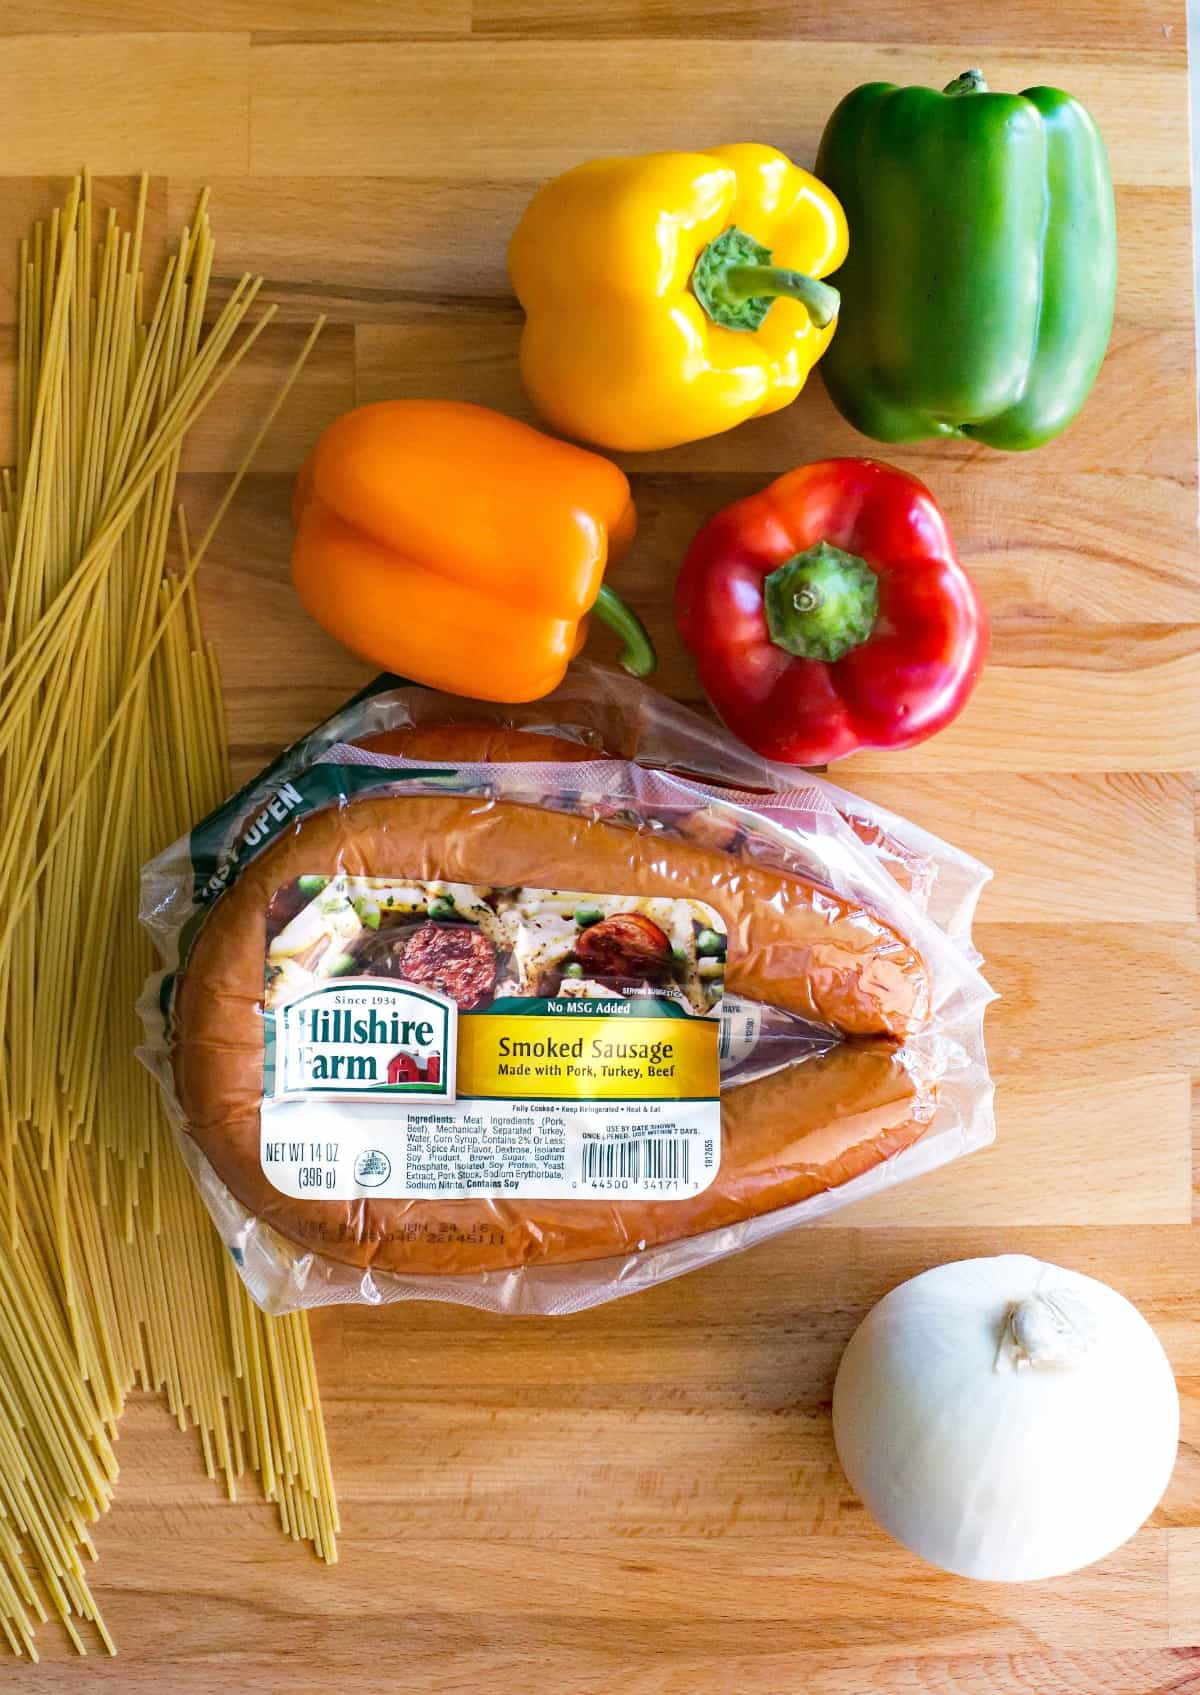 This smoked sausage and peppers recipe is one that is a staple in our